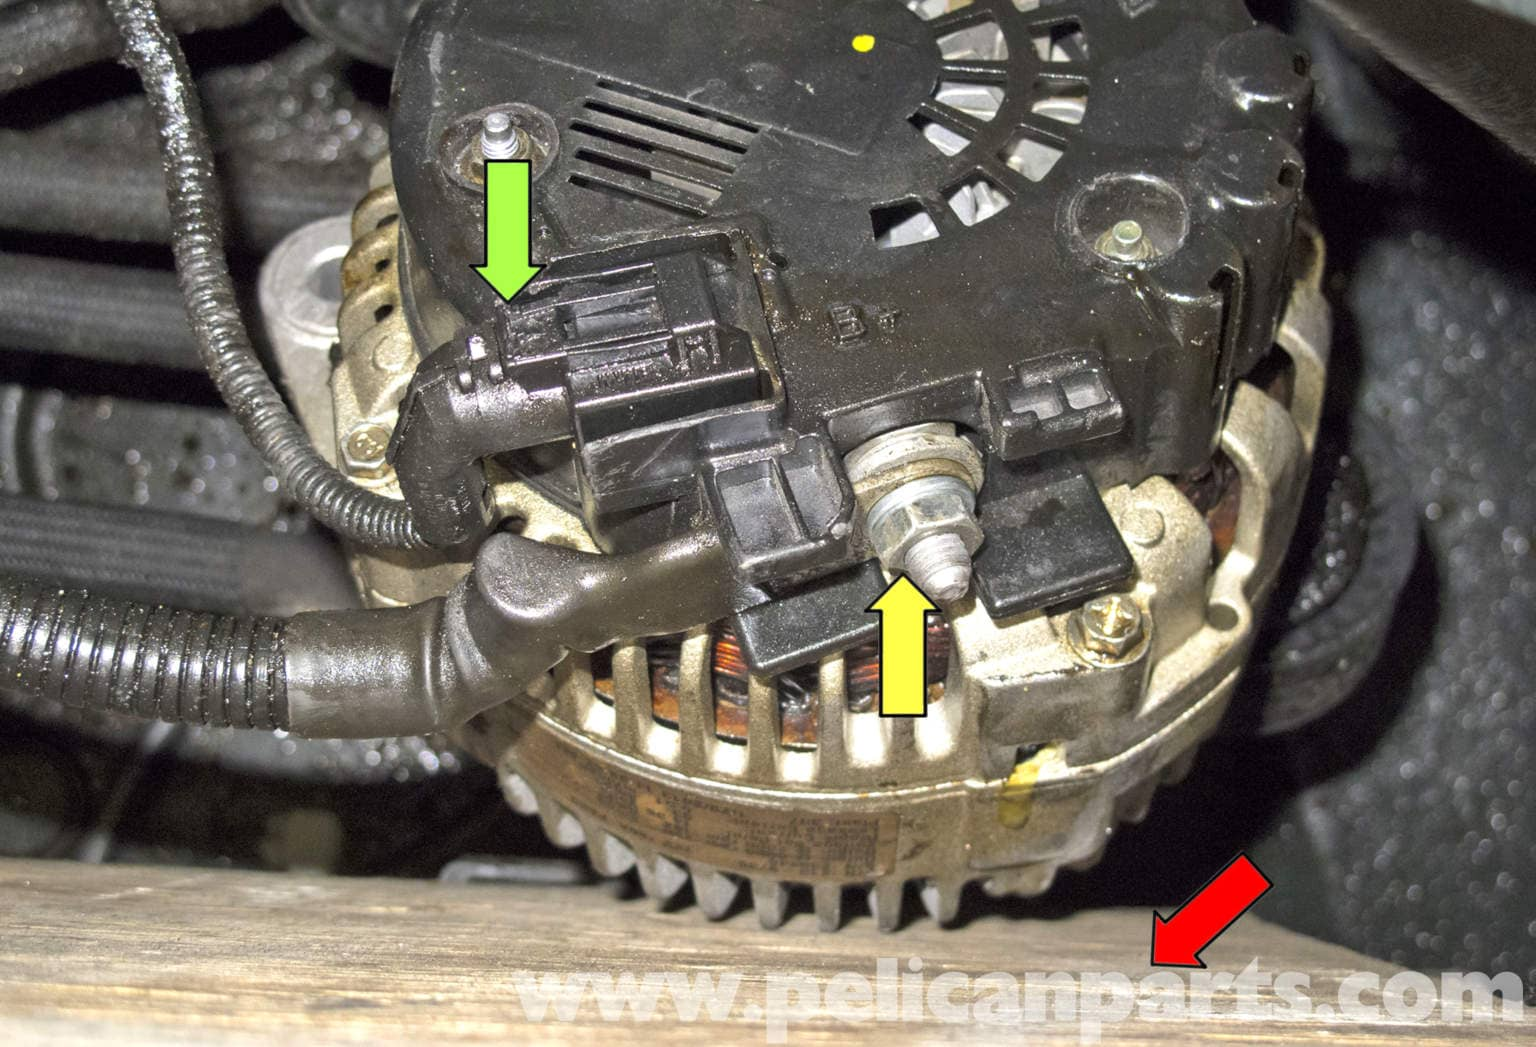 BMW E60 5-Series N62 8-Cylinder Alternator Replacement - Pelican Parts  Technical ArticlePelican Parts